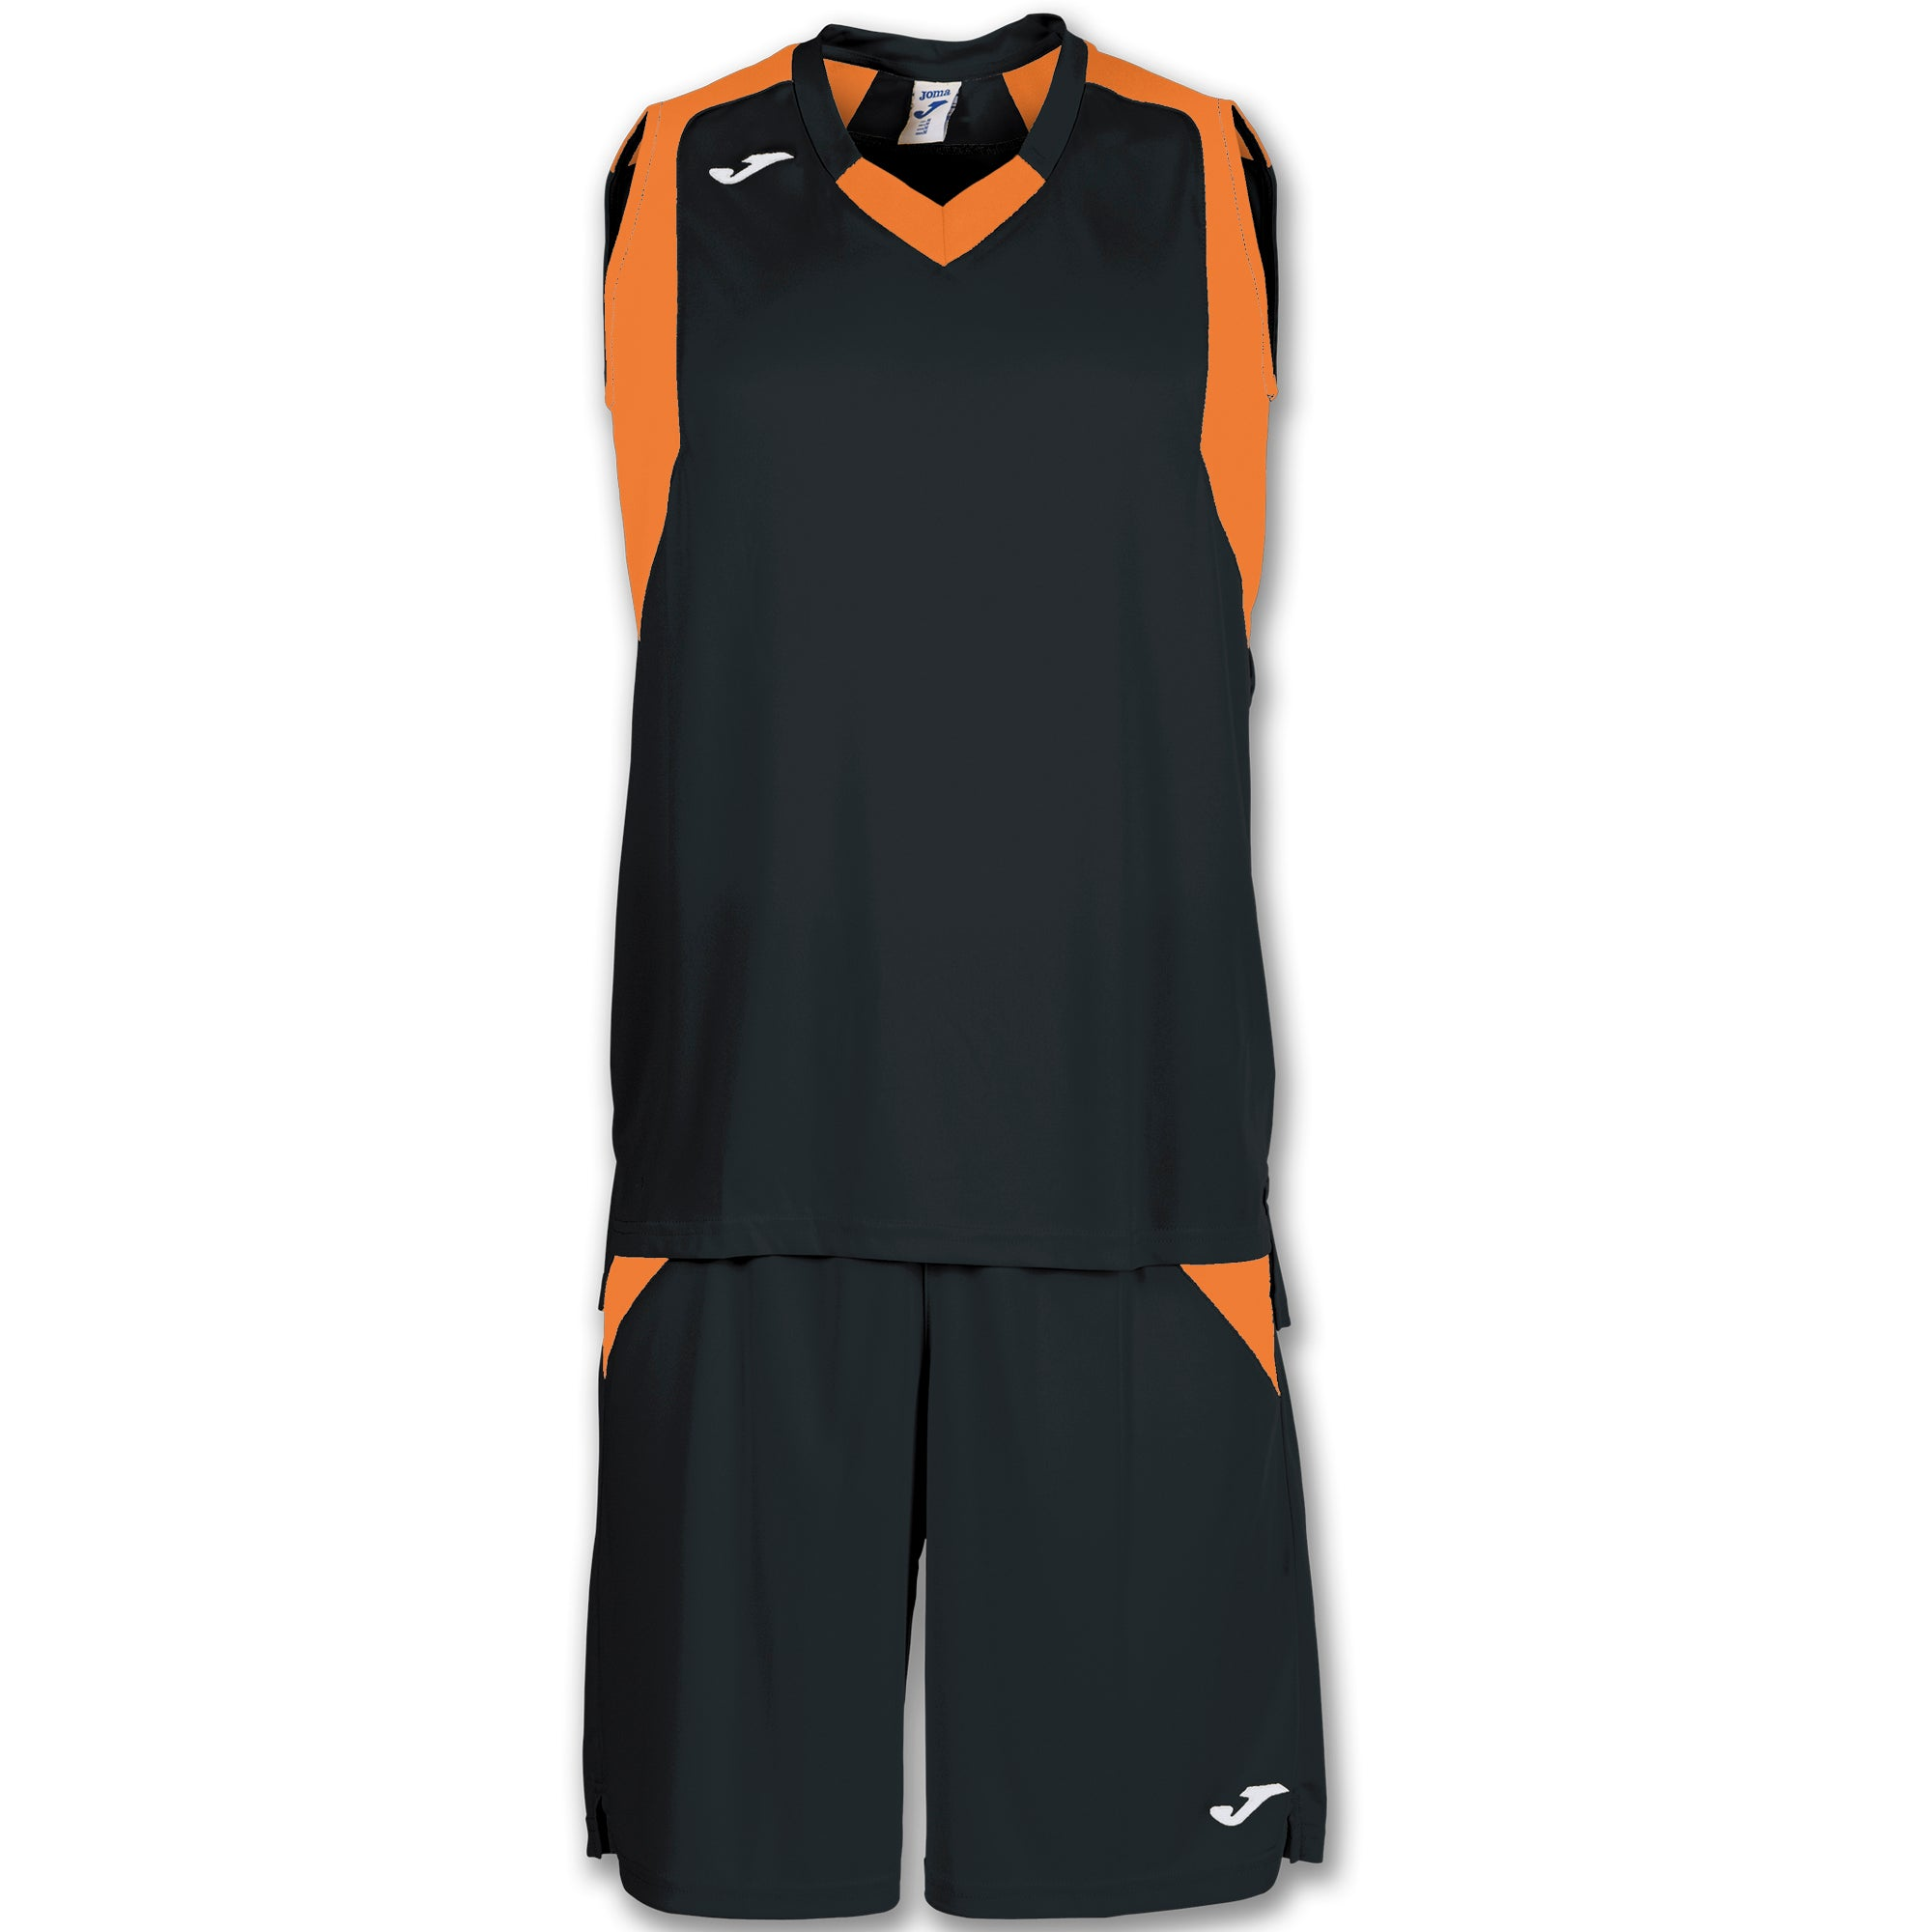 Teamwear - Joma Final Kit - Black/Orange - JO-101115-120